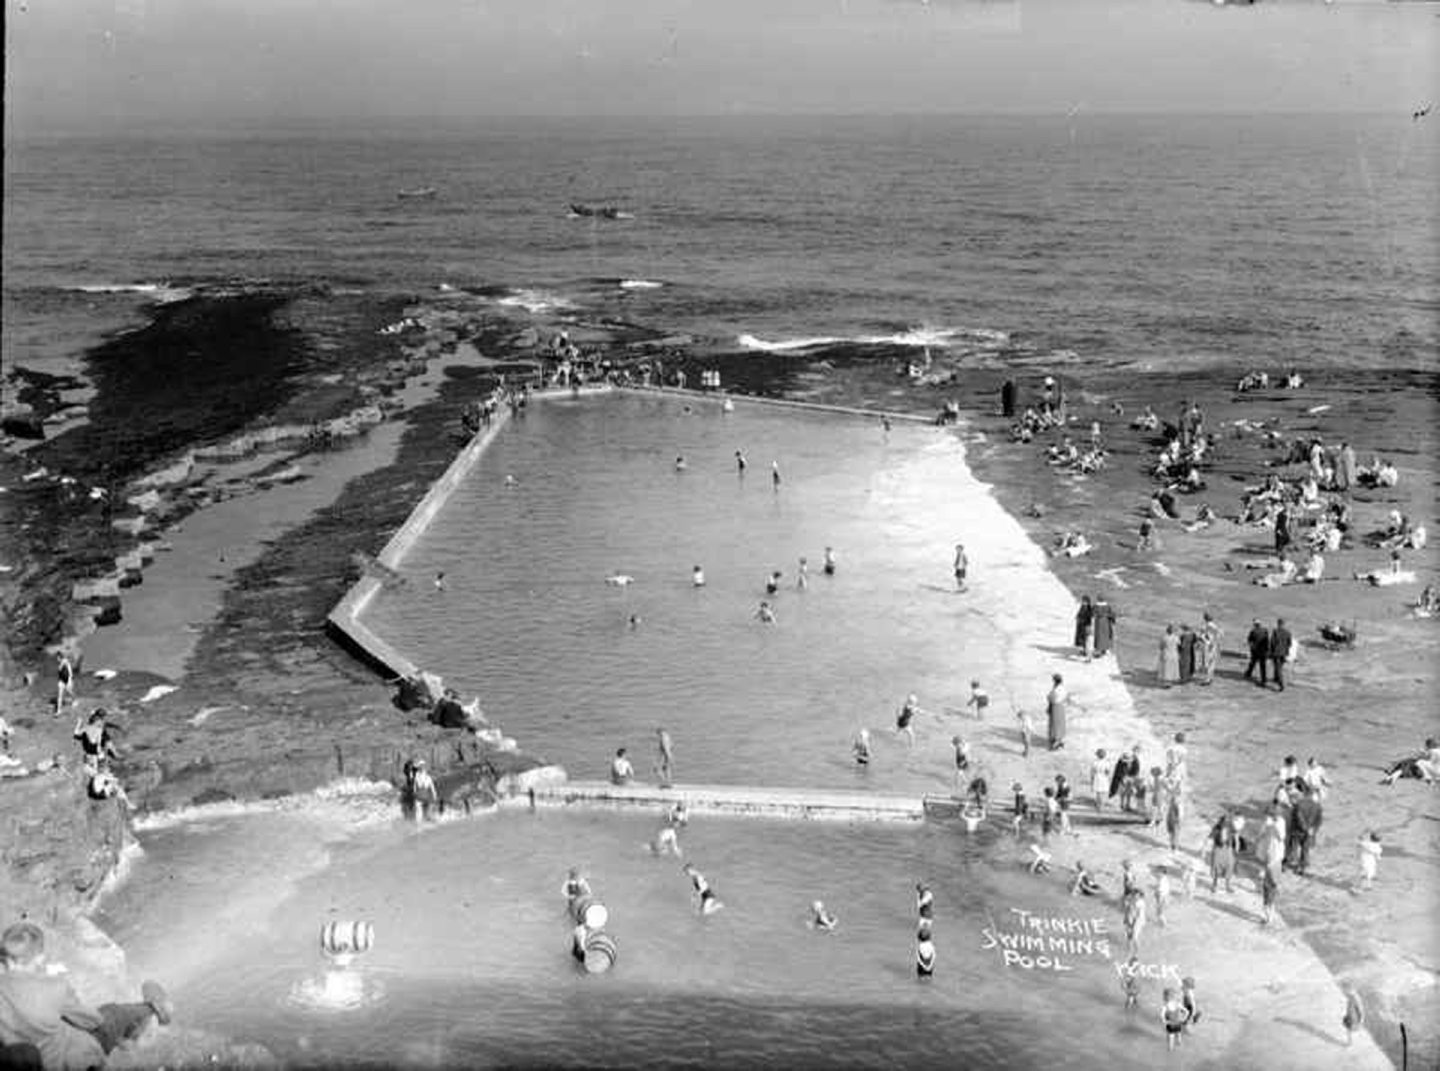 The Trinkie pool in Wick. Courtesy of The Johnston Collection.